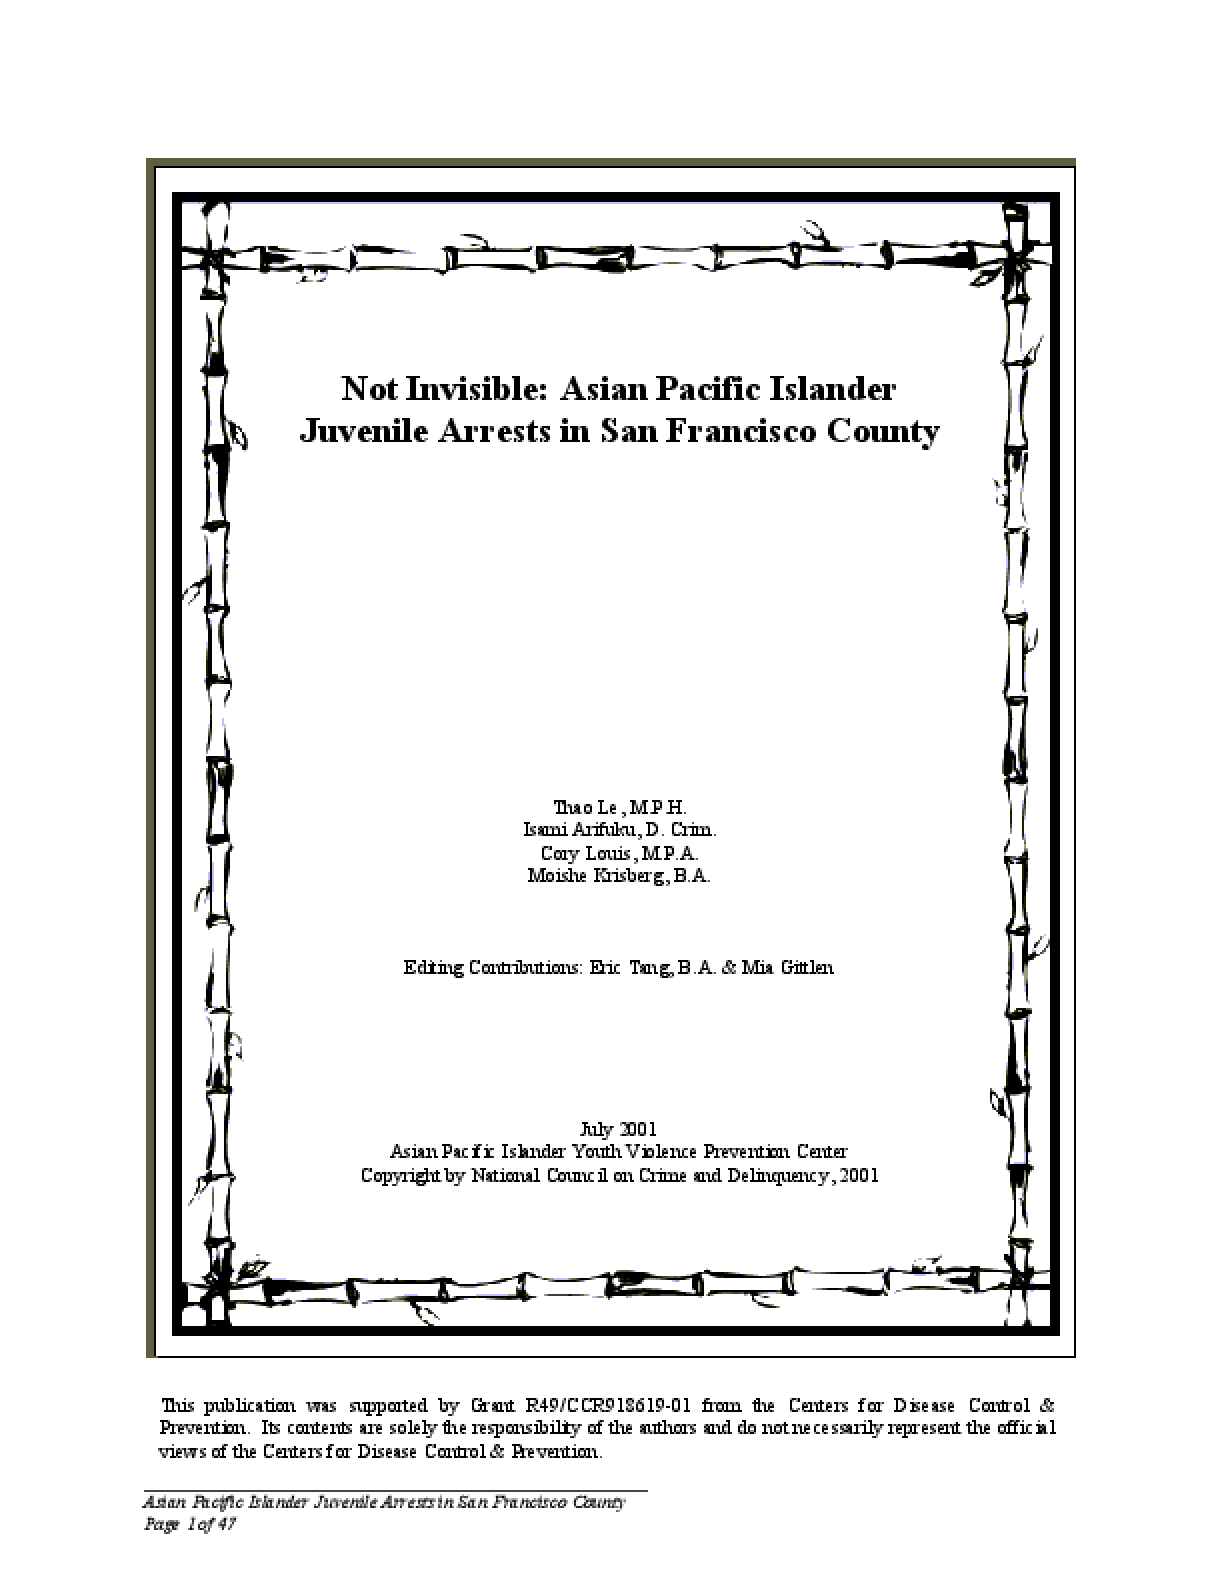 Not Invisible: Asian Pacific Islander Juvenile Arrests in San Francisco County